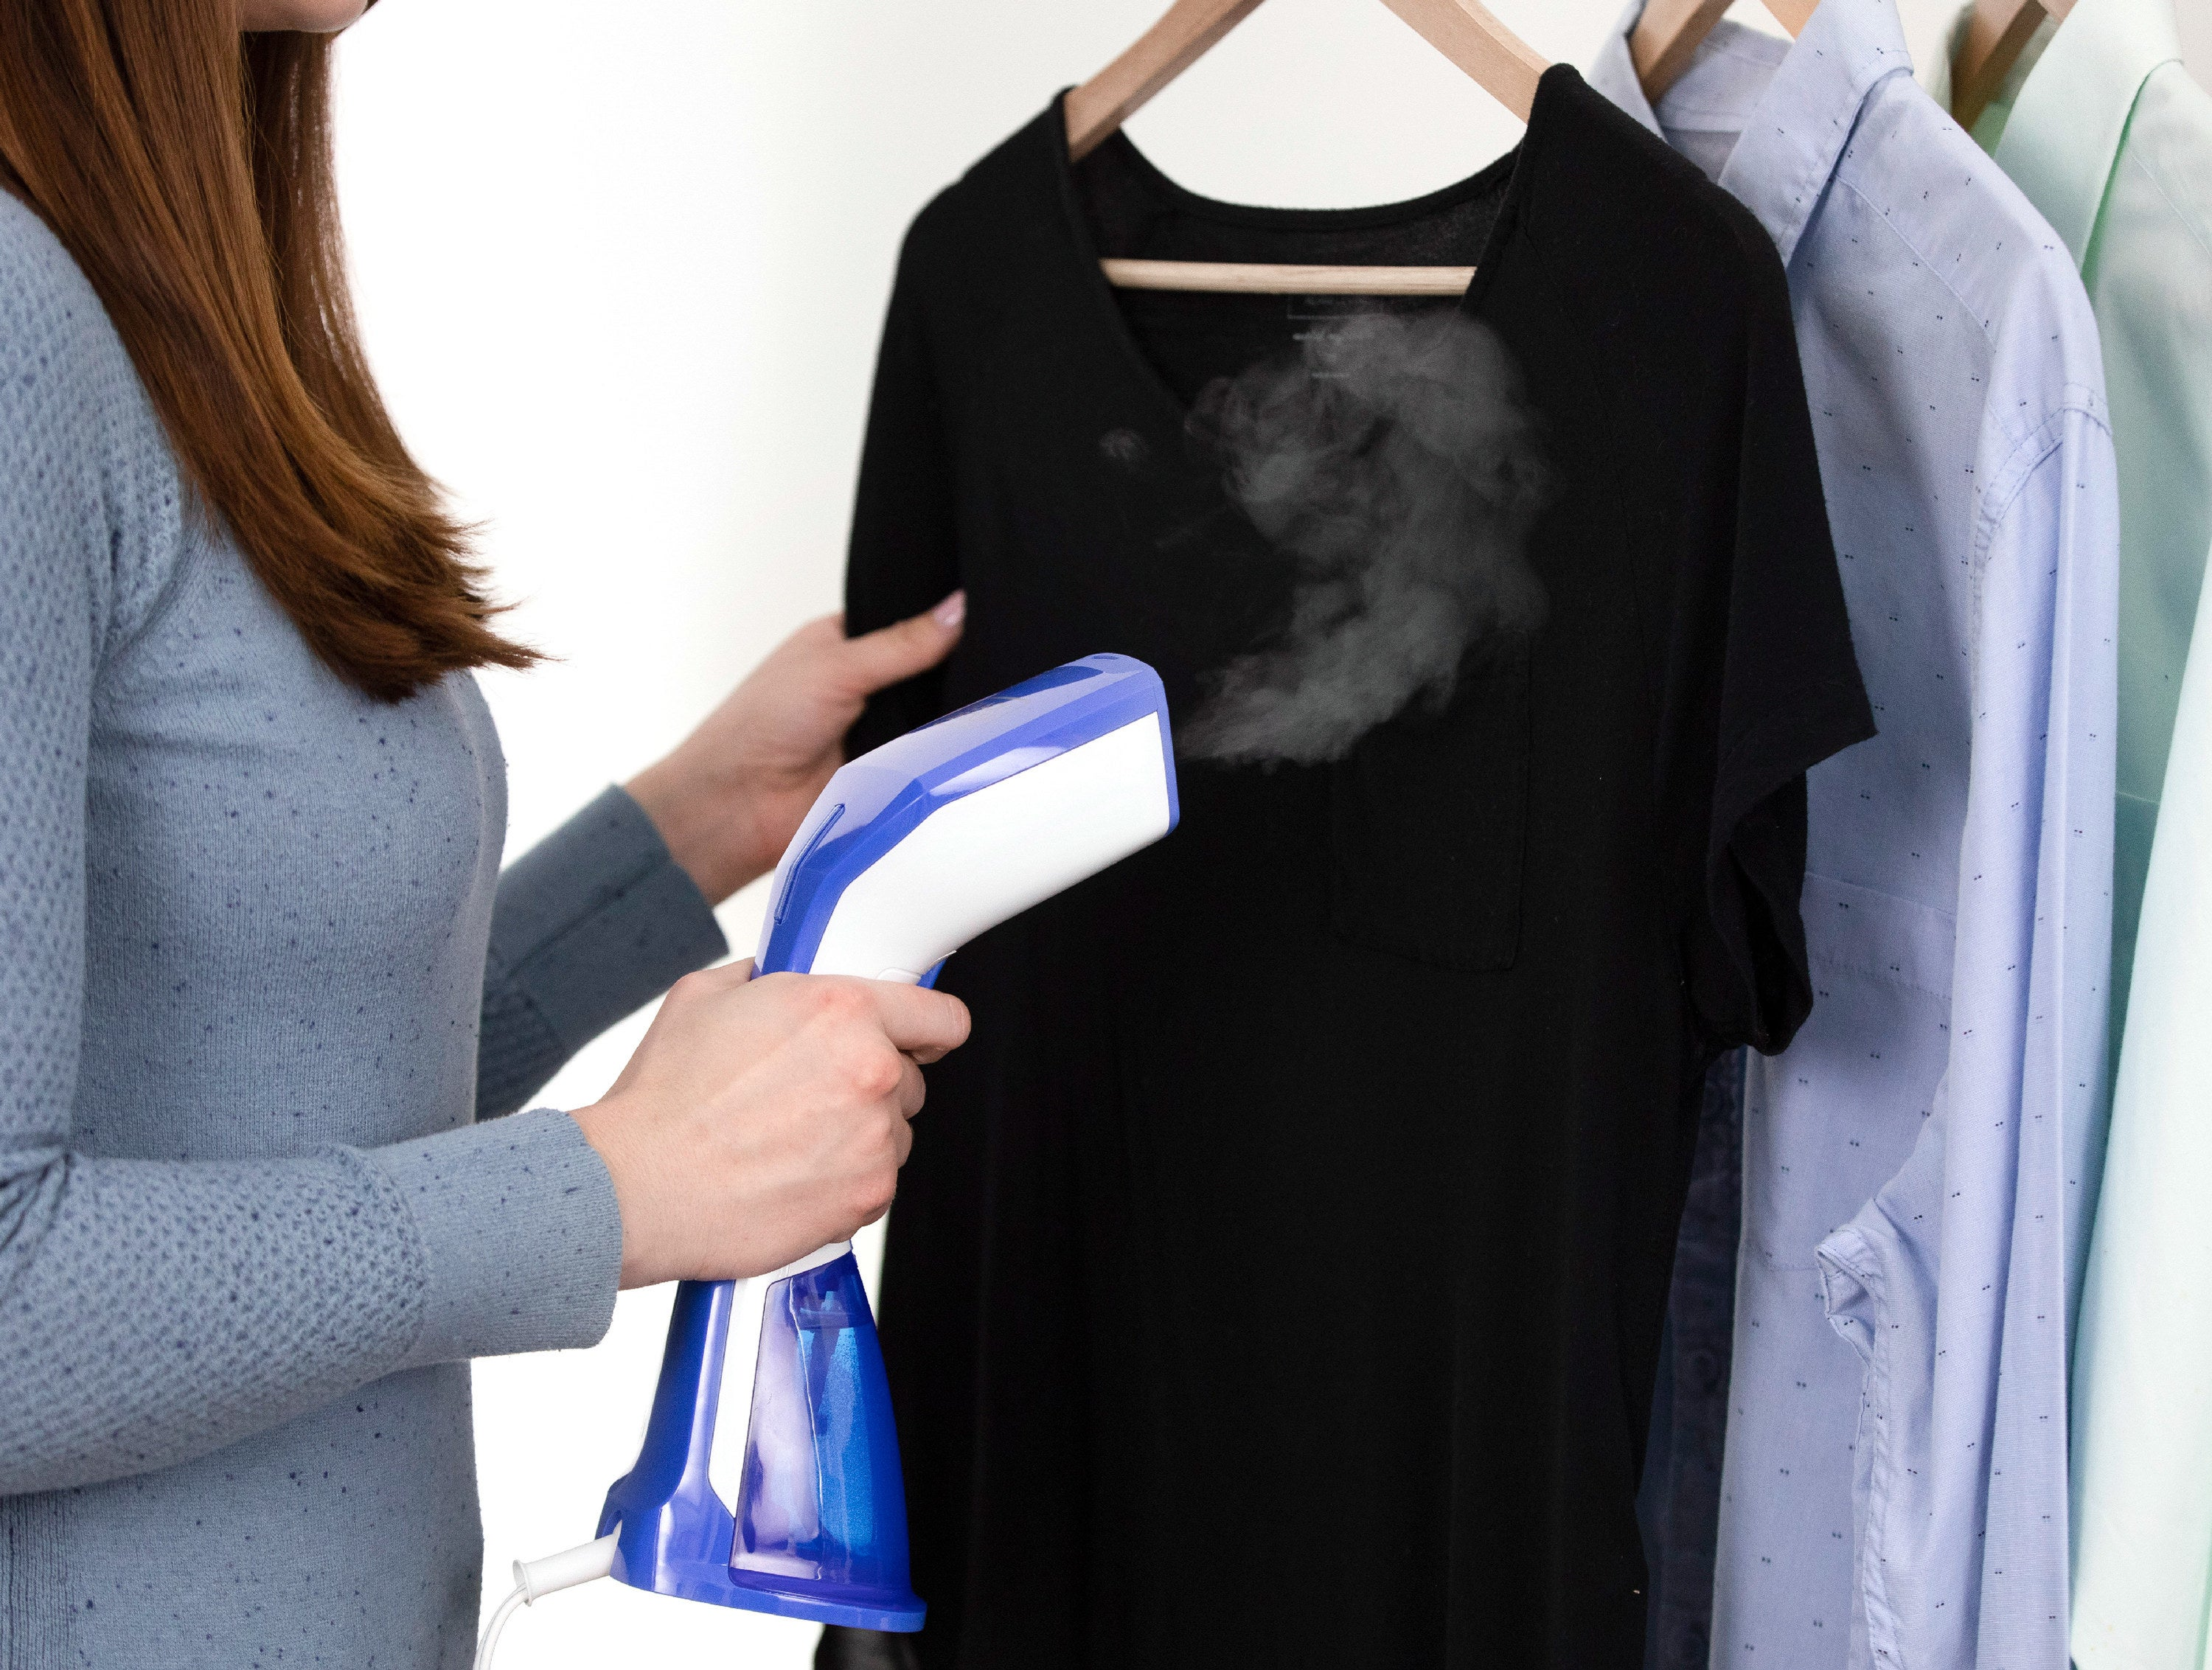 A model using the steamer on a black shirt